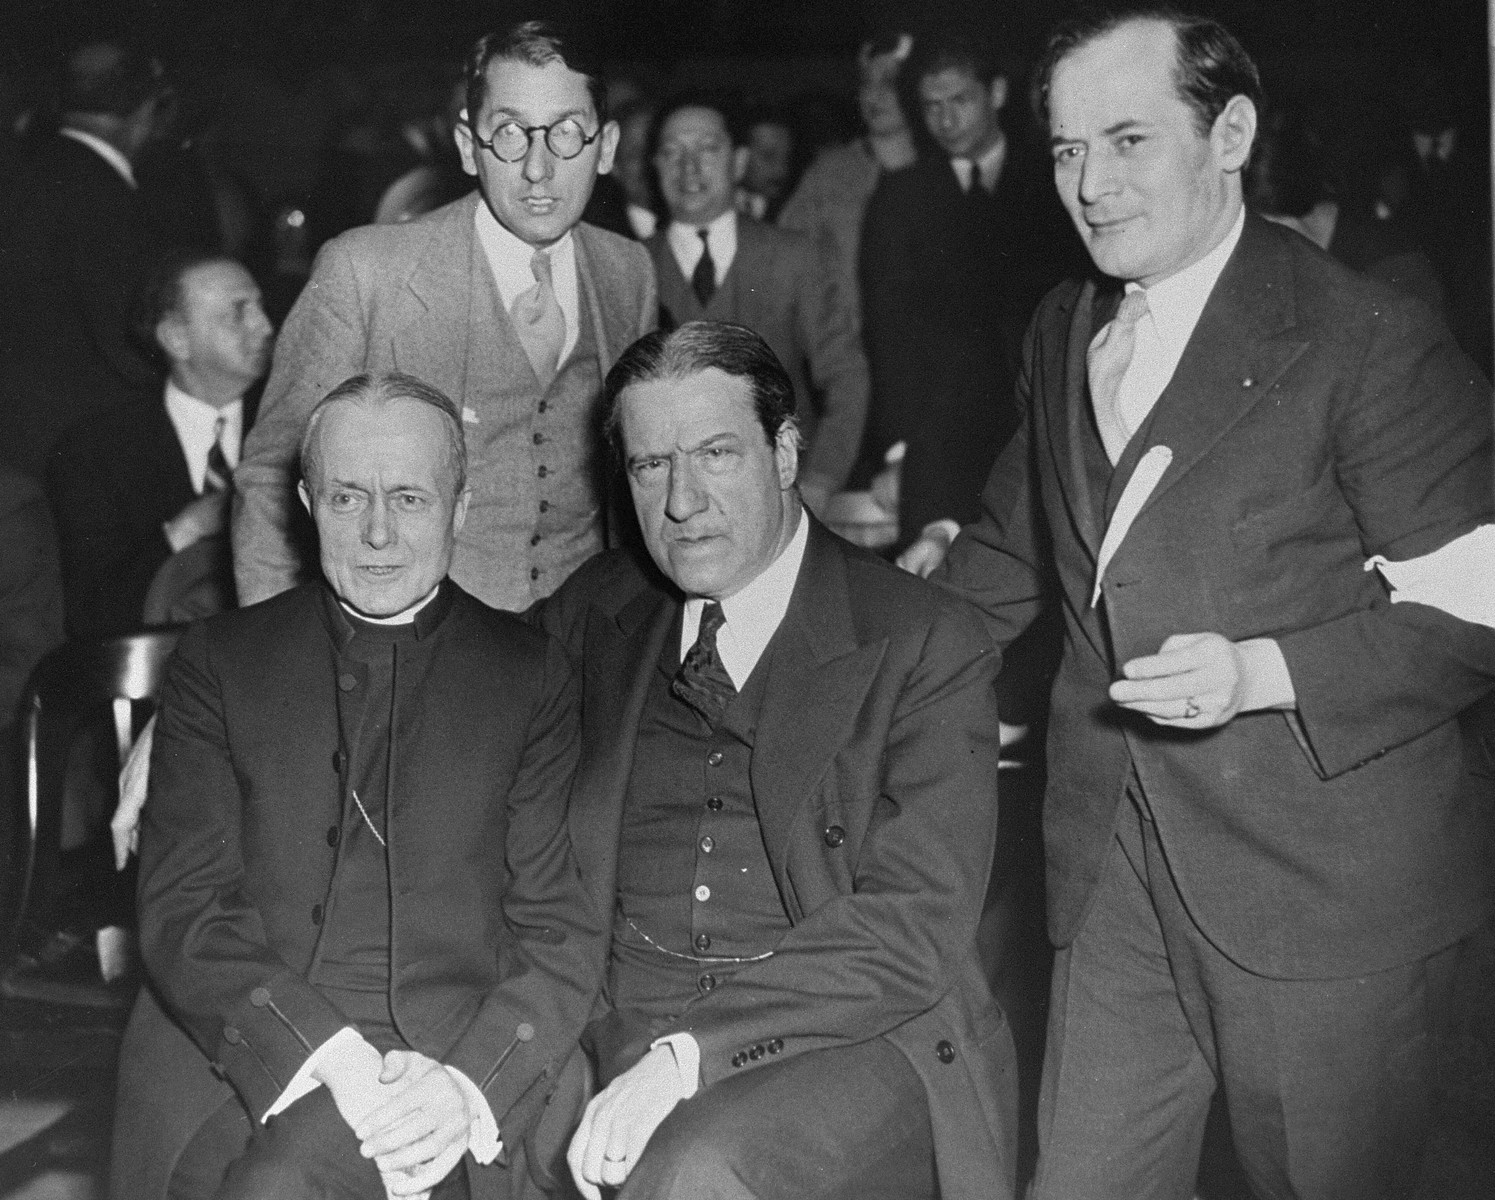 Bishop William T. Manning (lower left) and Rabbi Stephen Wise (center) attend a mass rally at Madison Square Garden to protest against the enactment of anti-Jewish legislation by the Nazi regime and the acts of terror and incitement against German Jewry perpetrated by the new government.